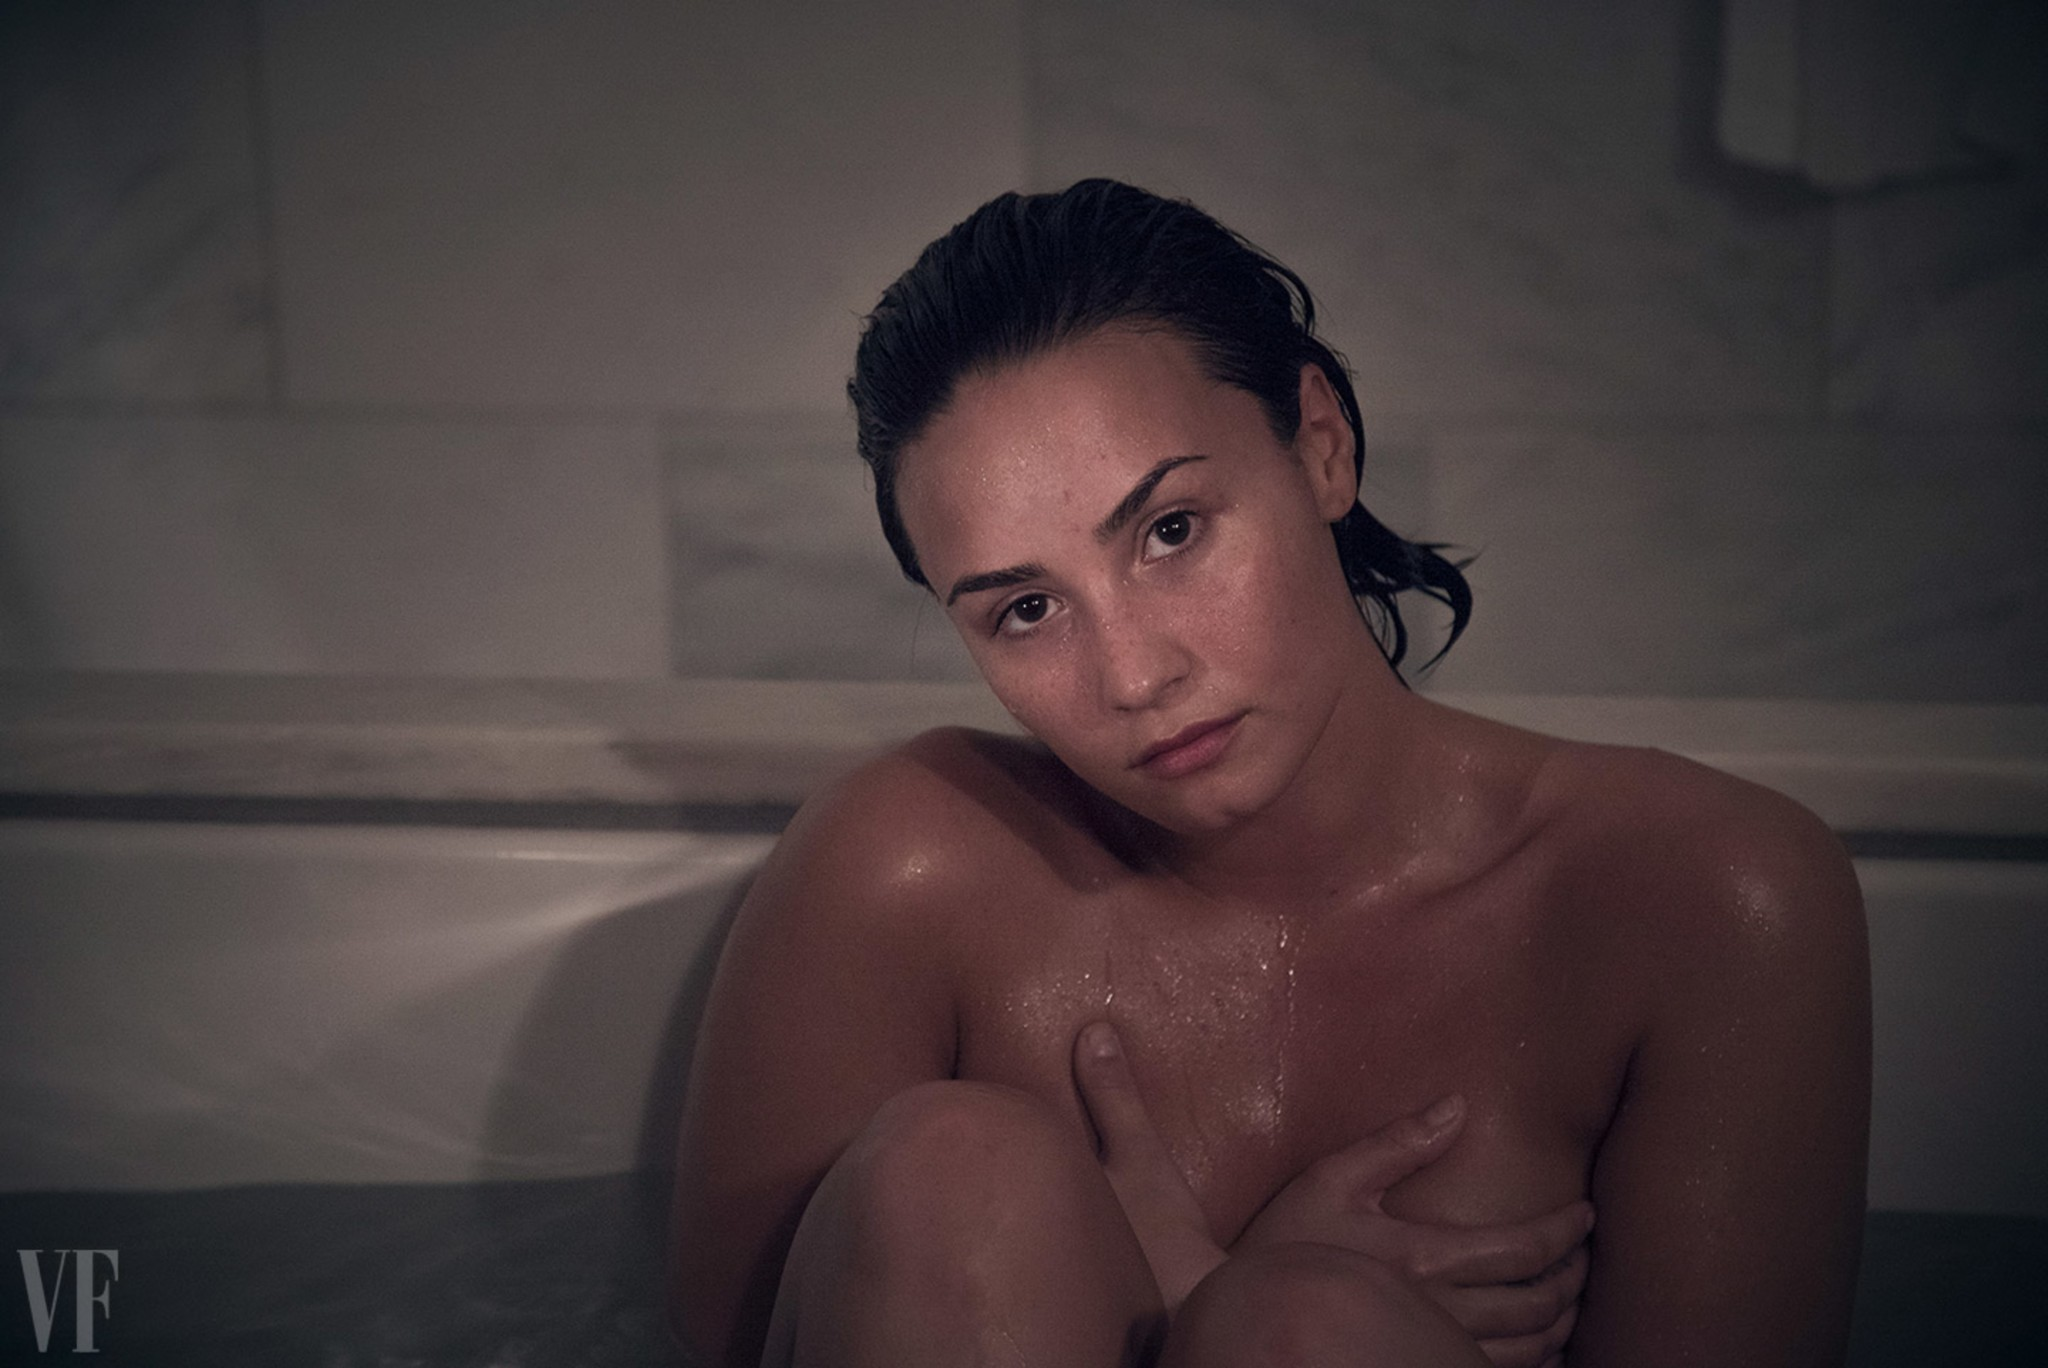 demi-lovato-nude-in-vanity-fair-magazine-october-2015-02